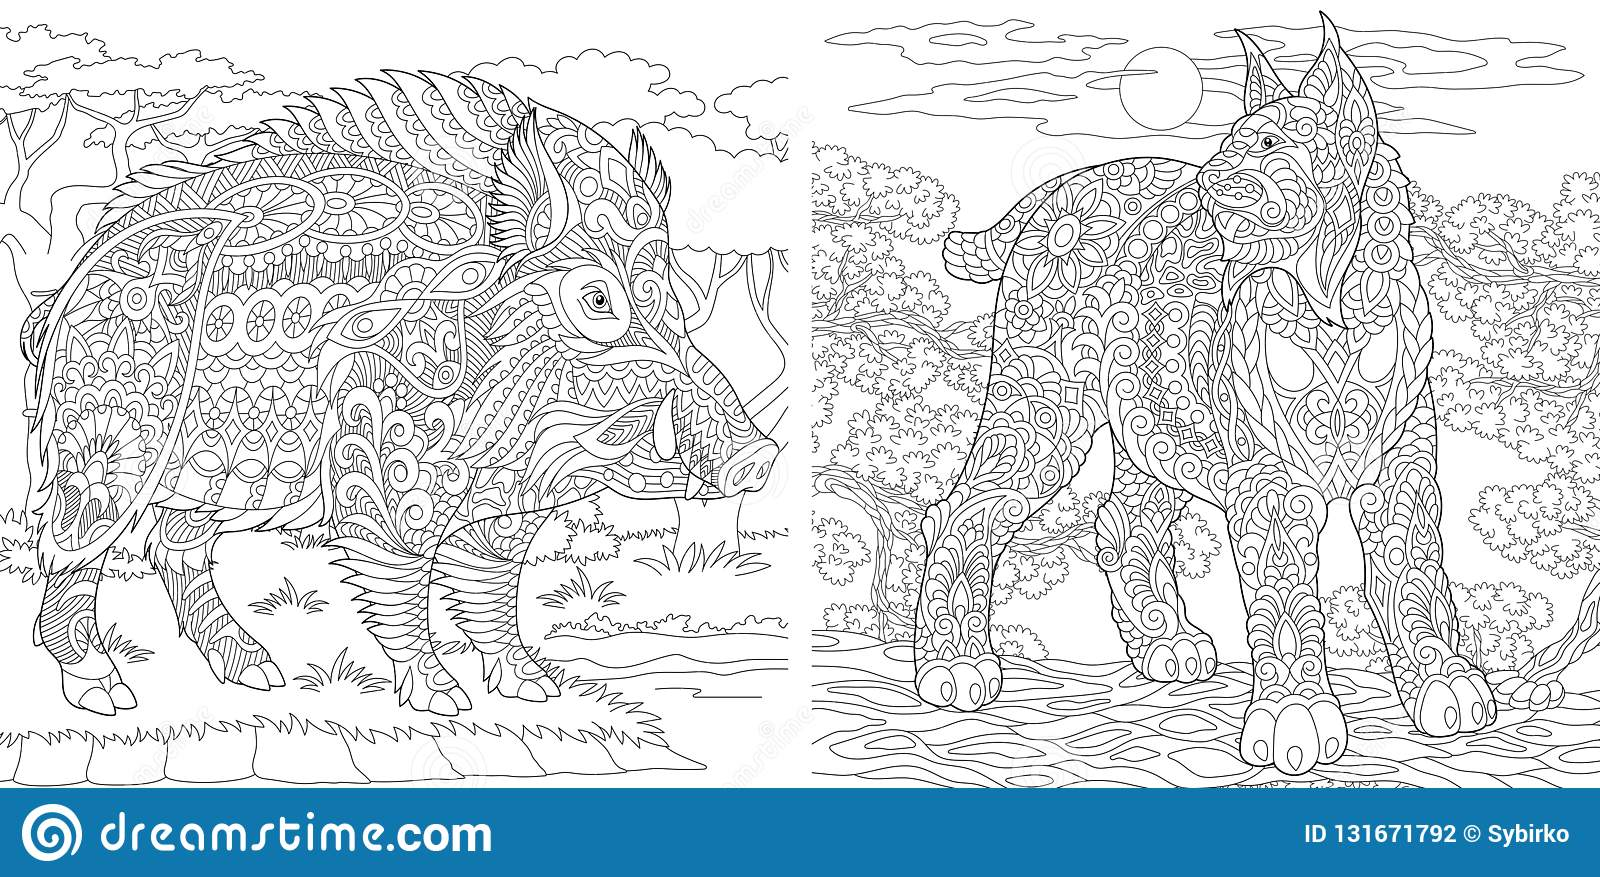 Coloring Pages. Coloring Book for adults. Colouring pictures with wildcat and wild boar. Antistress freehand sketch drawing with